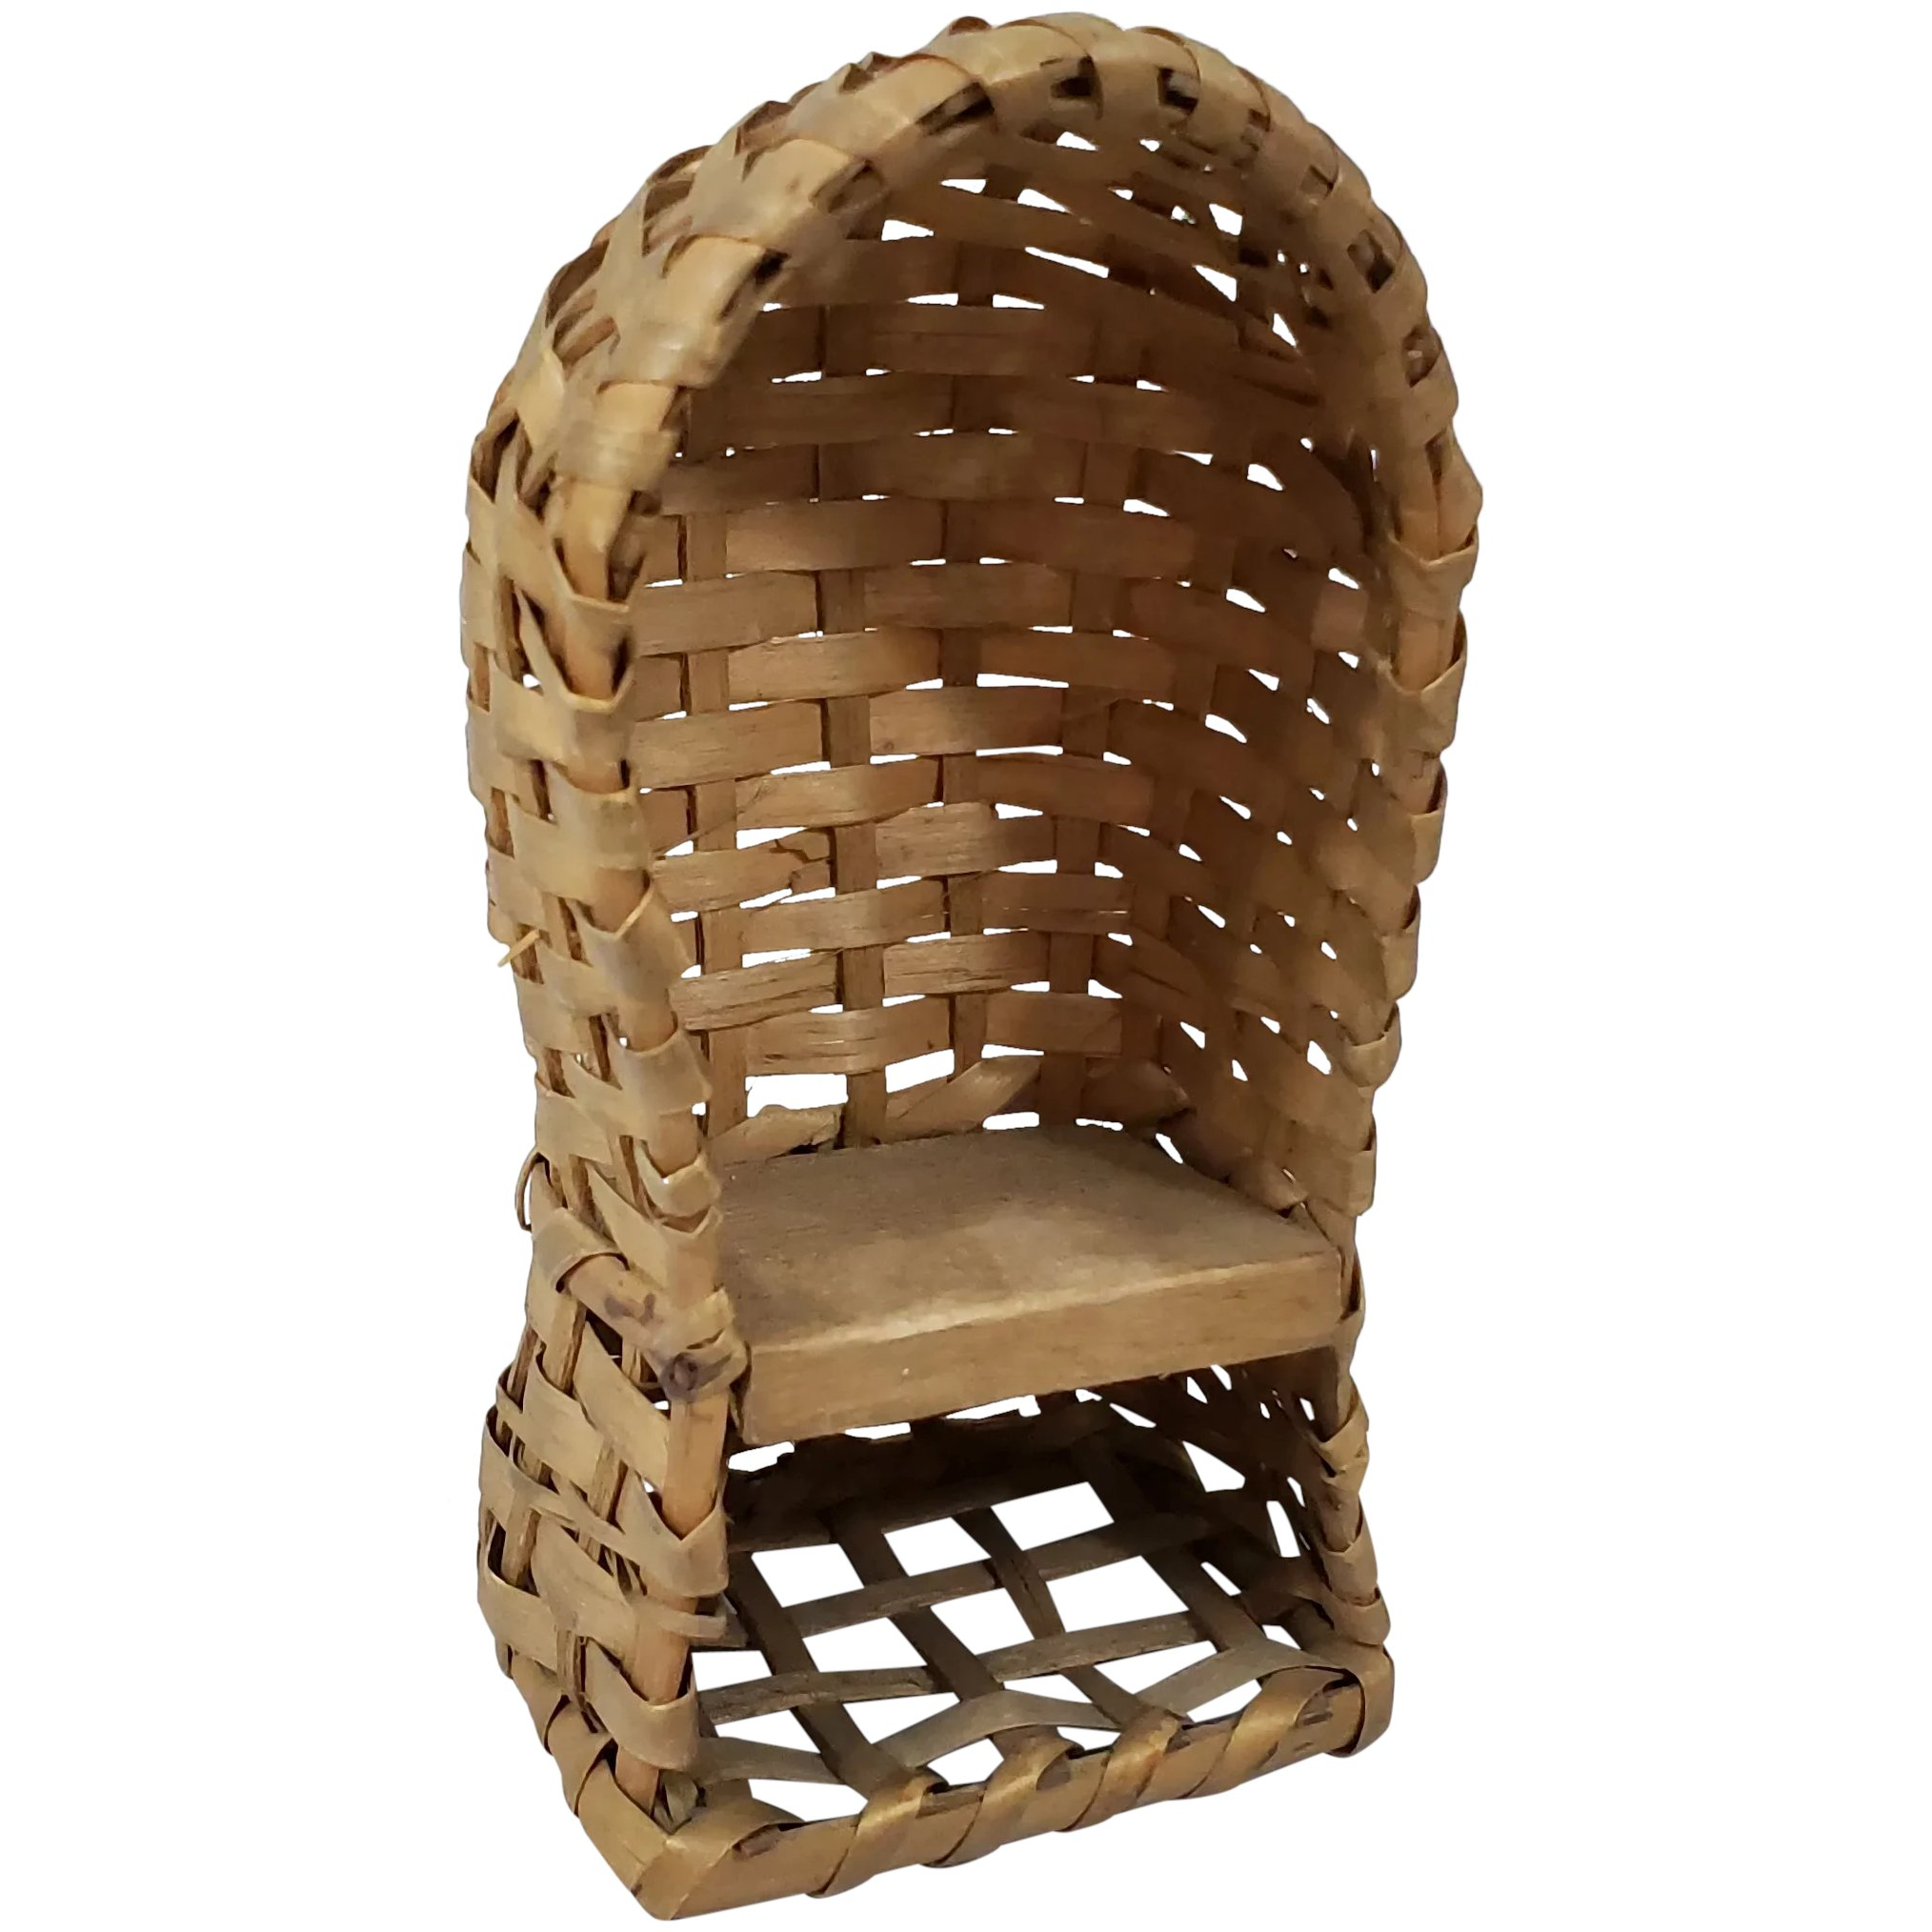 Rare Dollhouse Sized Wicker Hooded Bath Chair